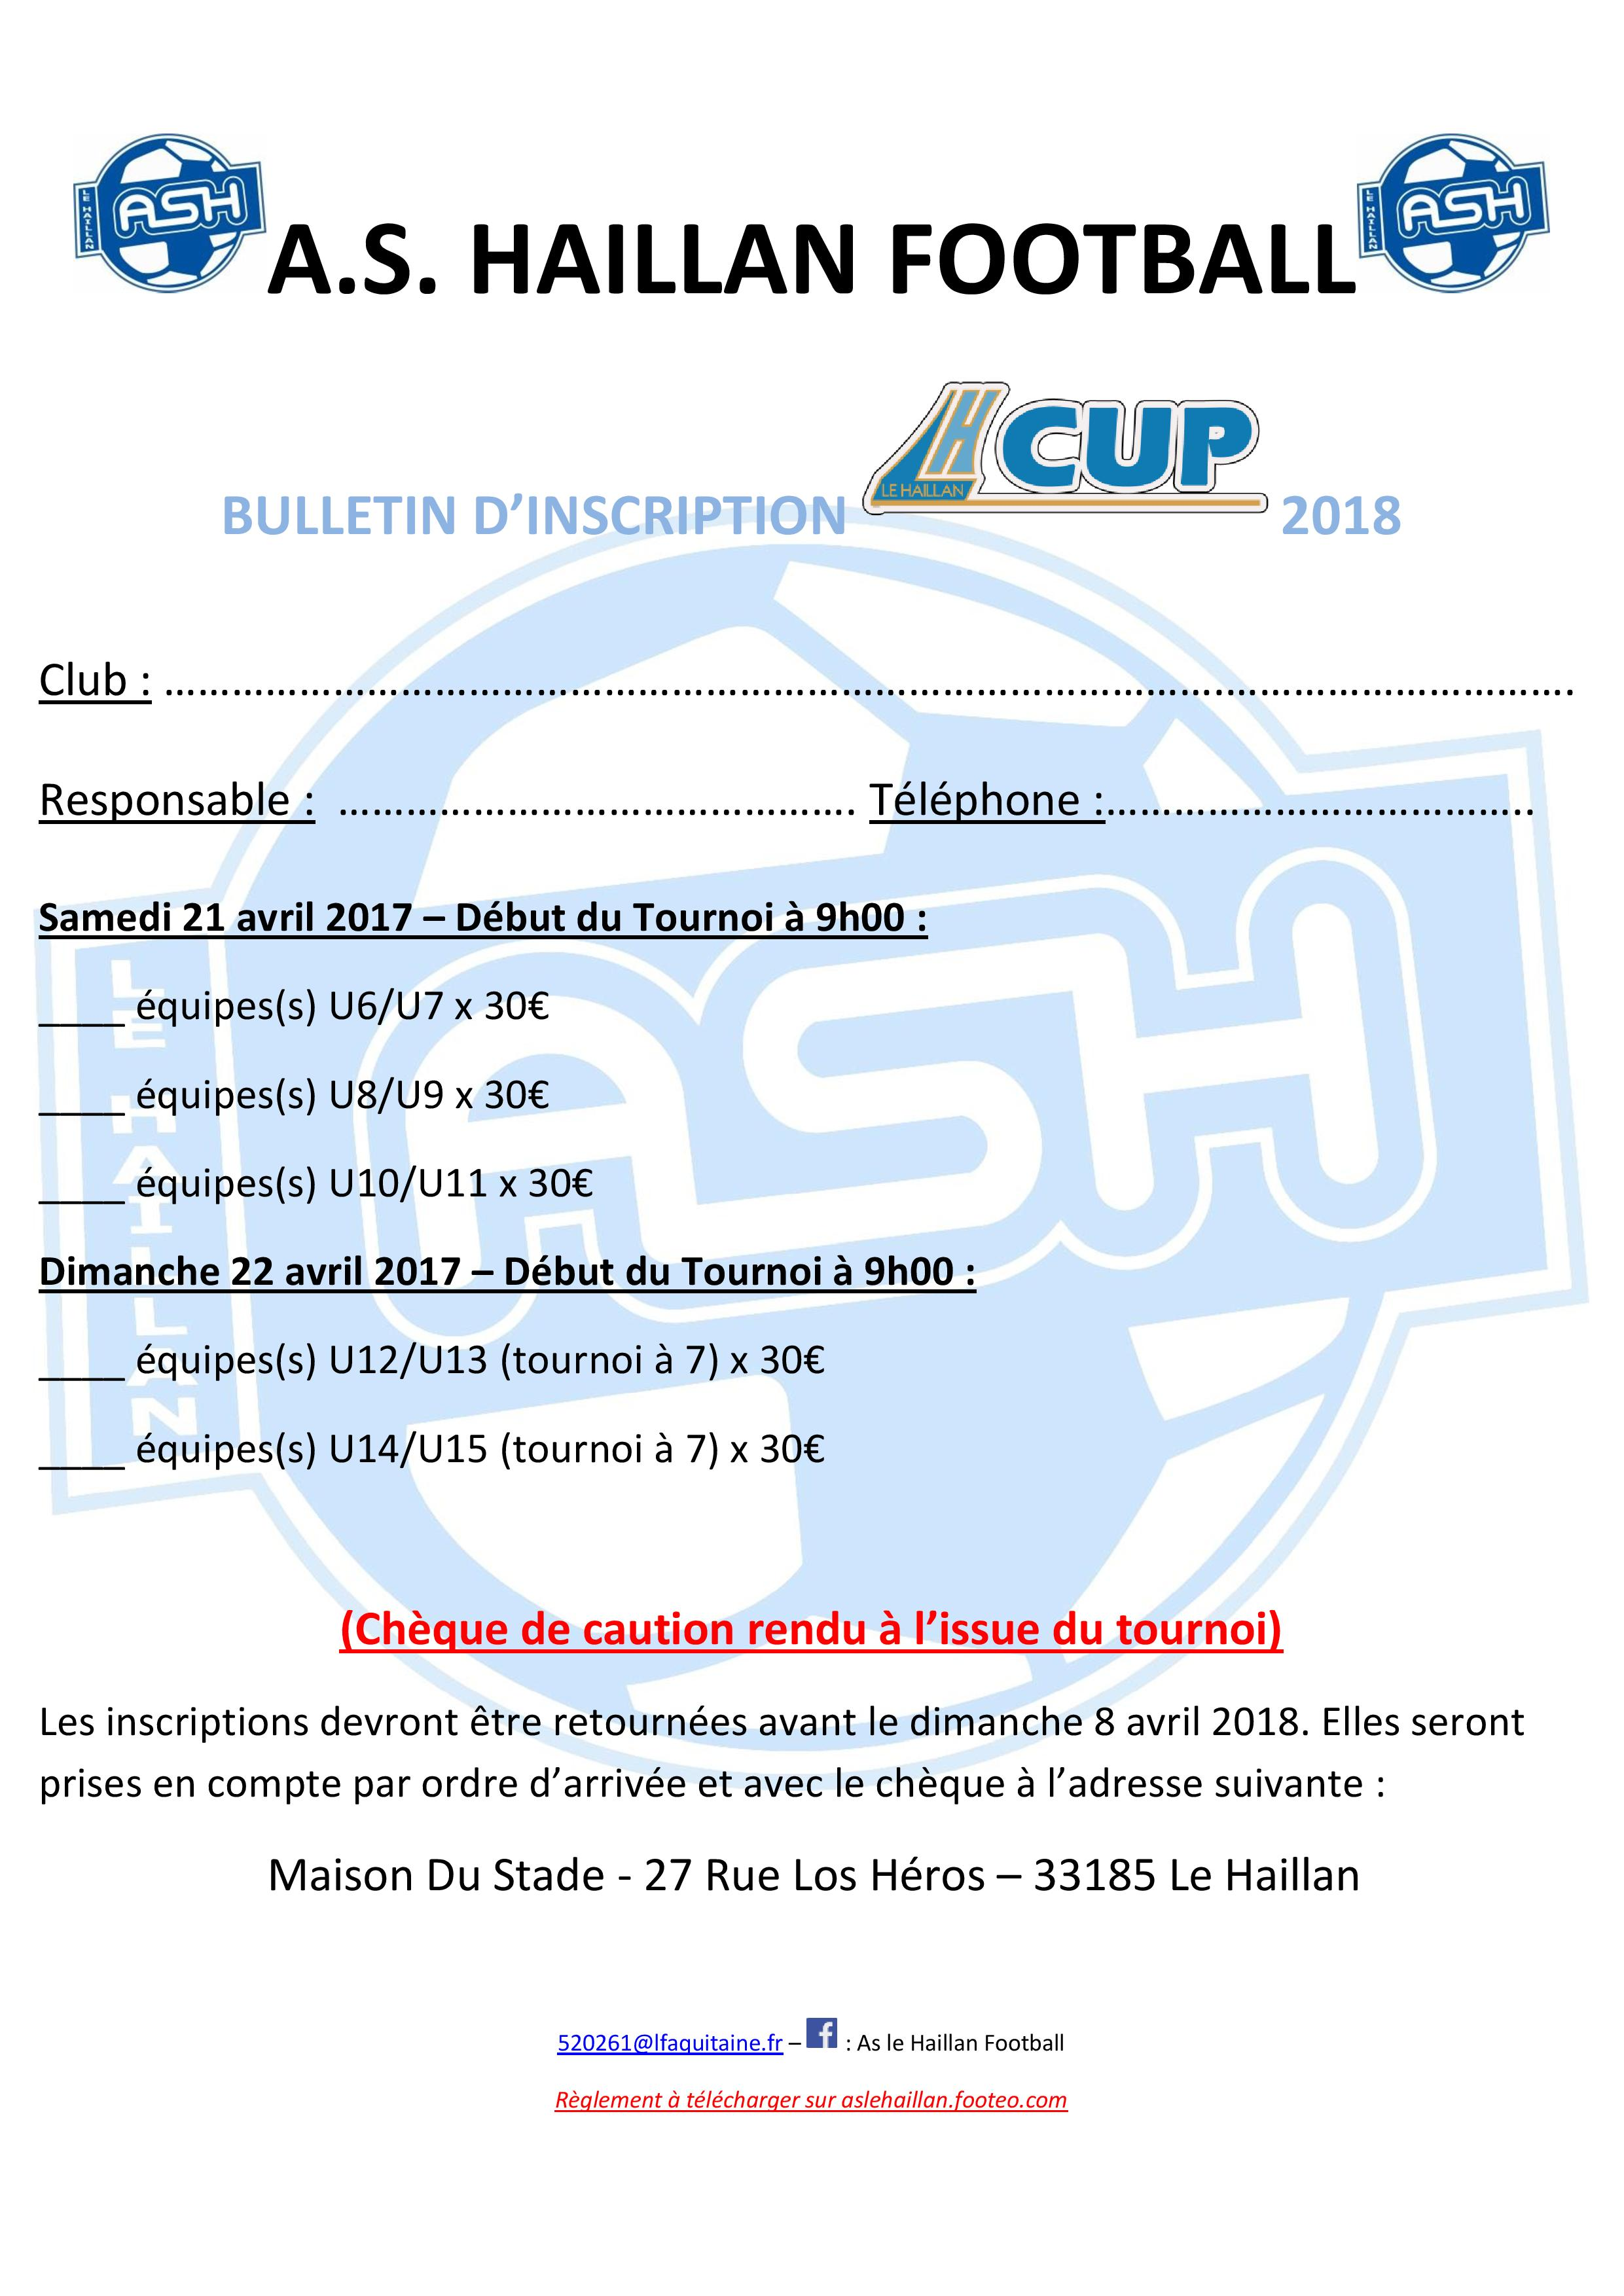 Bulletin d'inscription LH CUP 2018